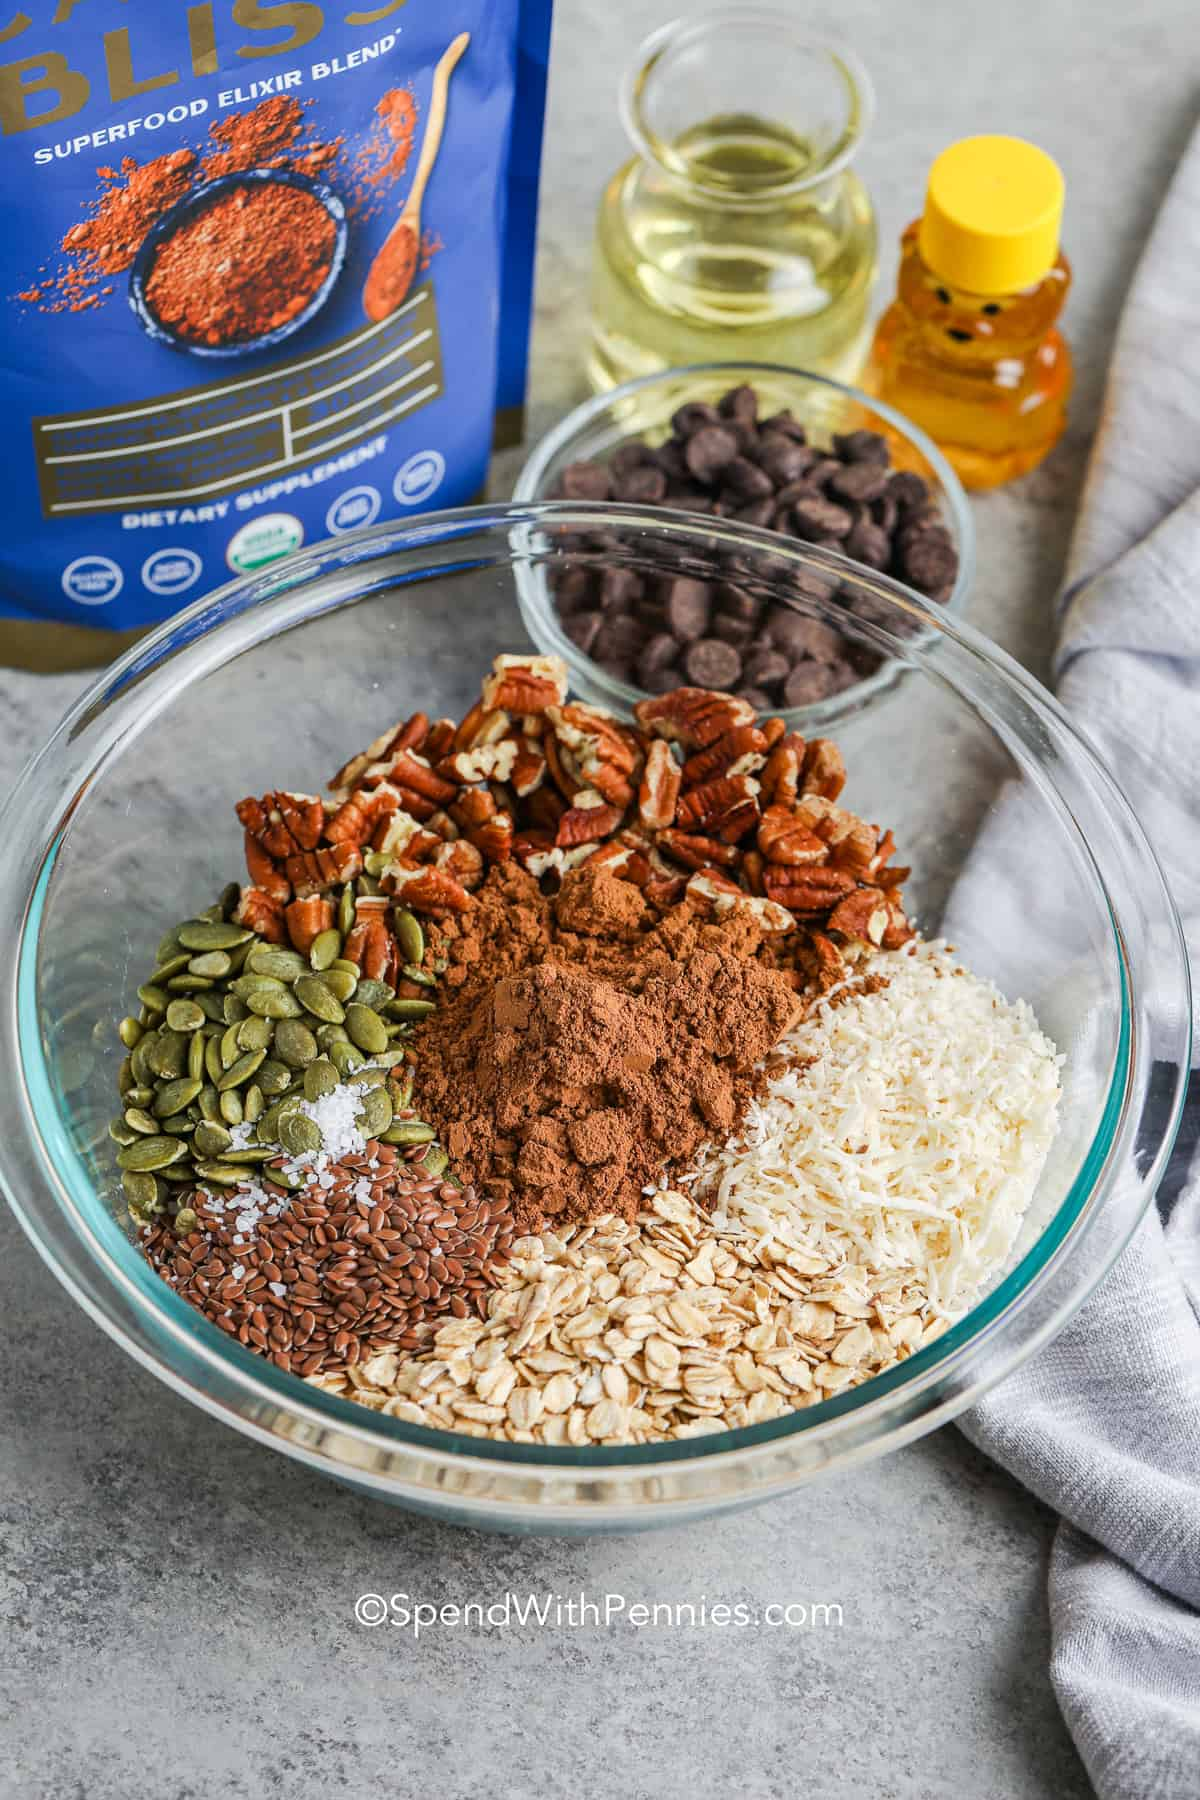 ingredients for chocolate granola in a bowl